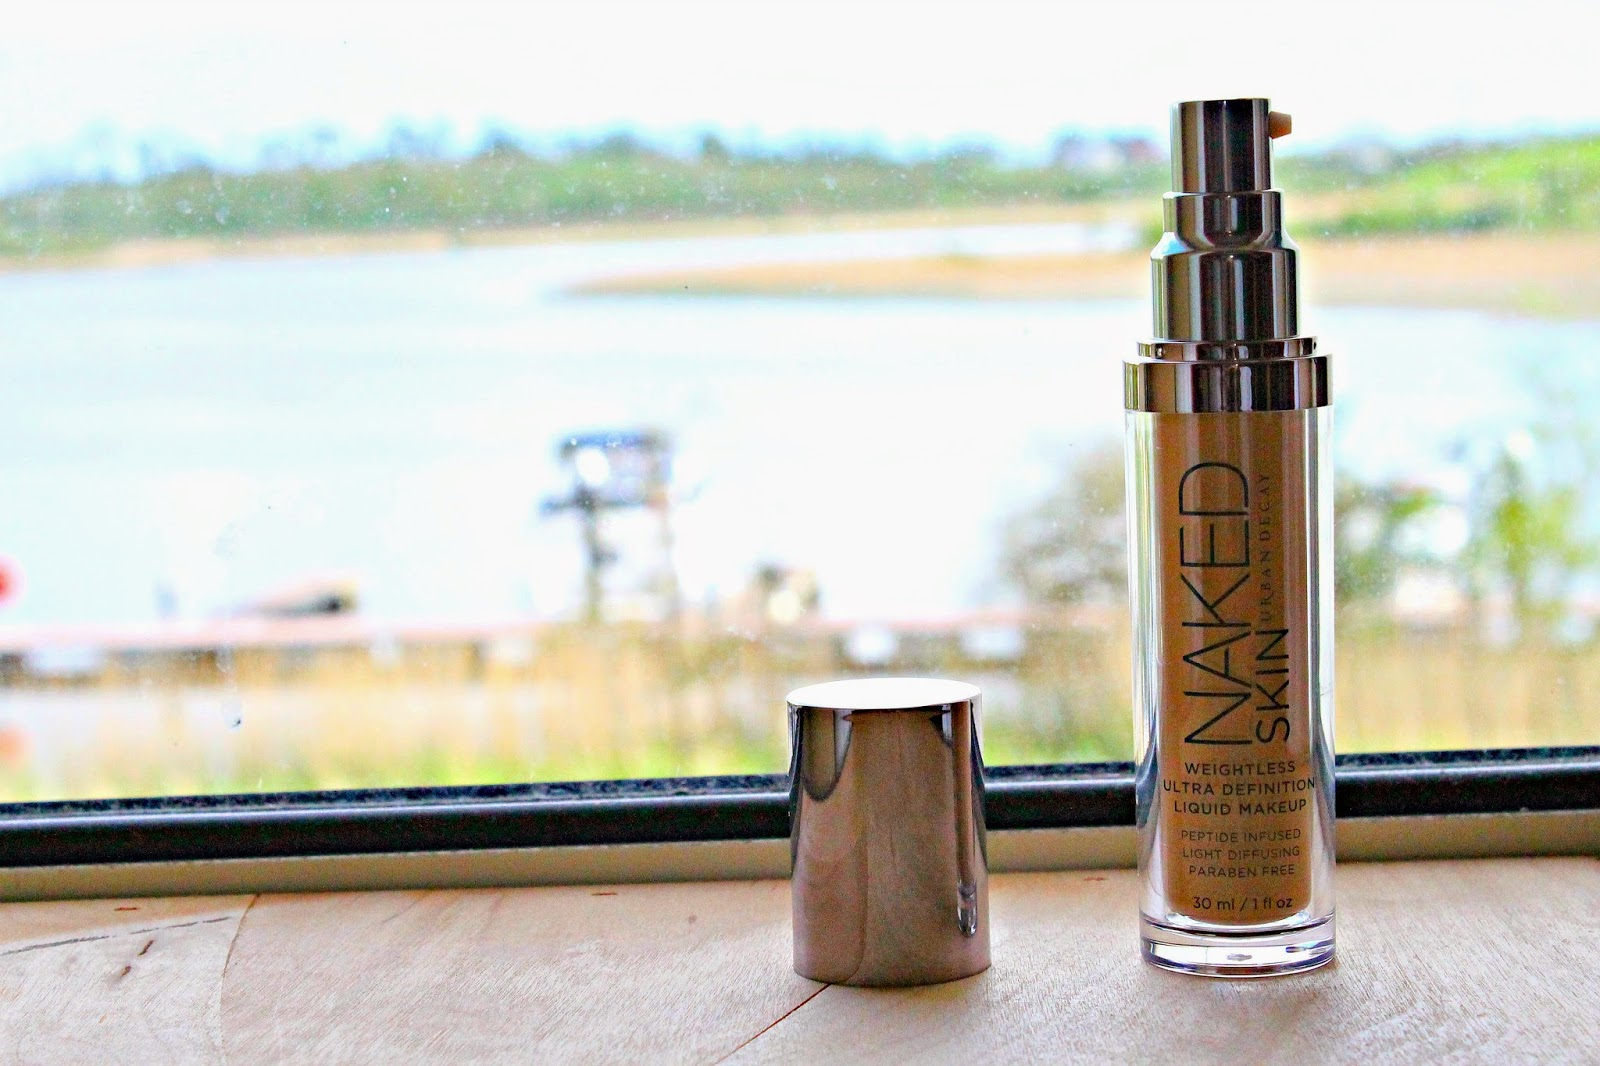 Urban Decay Naked Skin Weightless Ultra Definition foundation